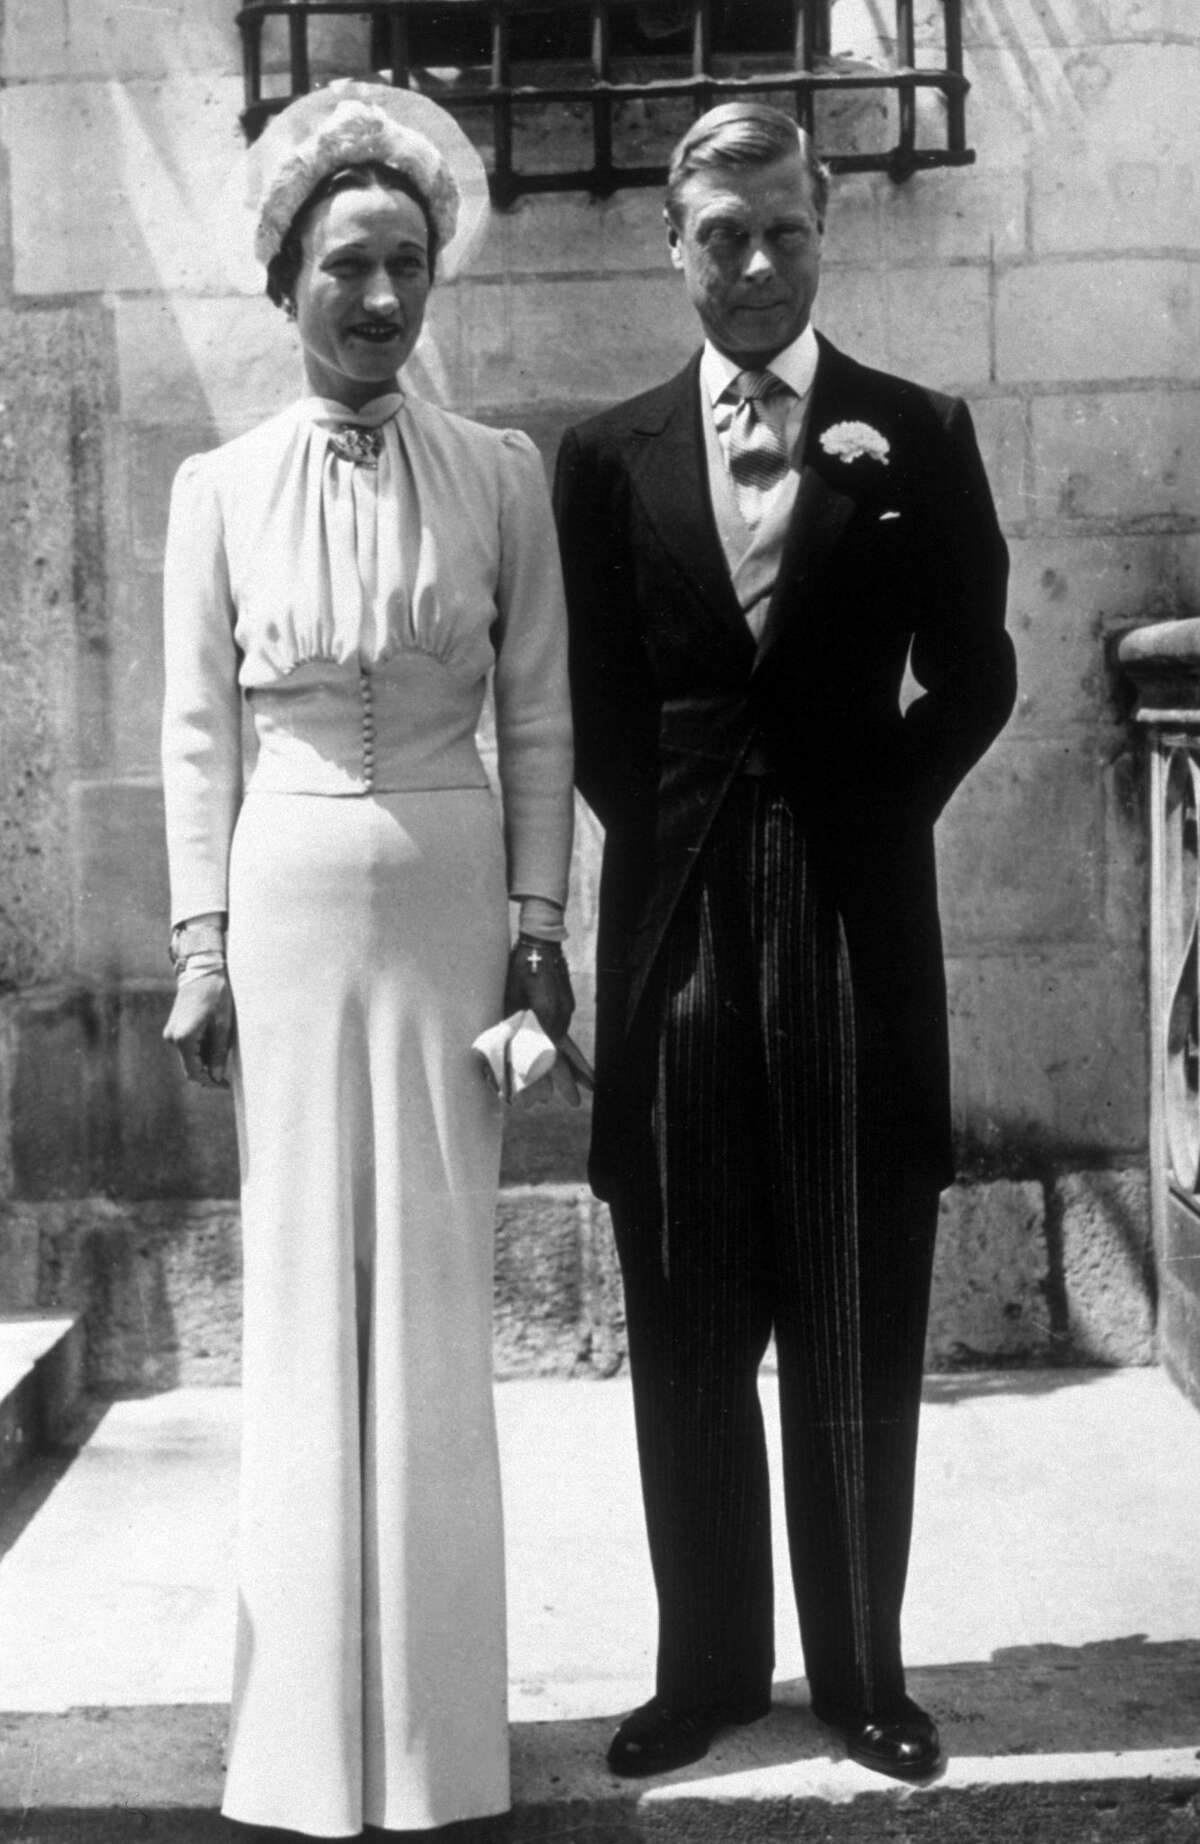 A portrait of the Duke and Duchess of Windsor on their wedding day at the Chateau de Conde in France in June 1937.